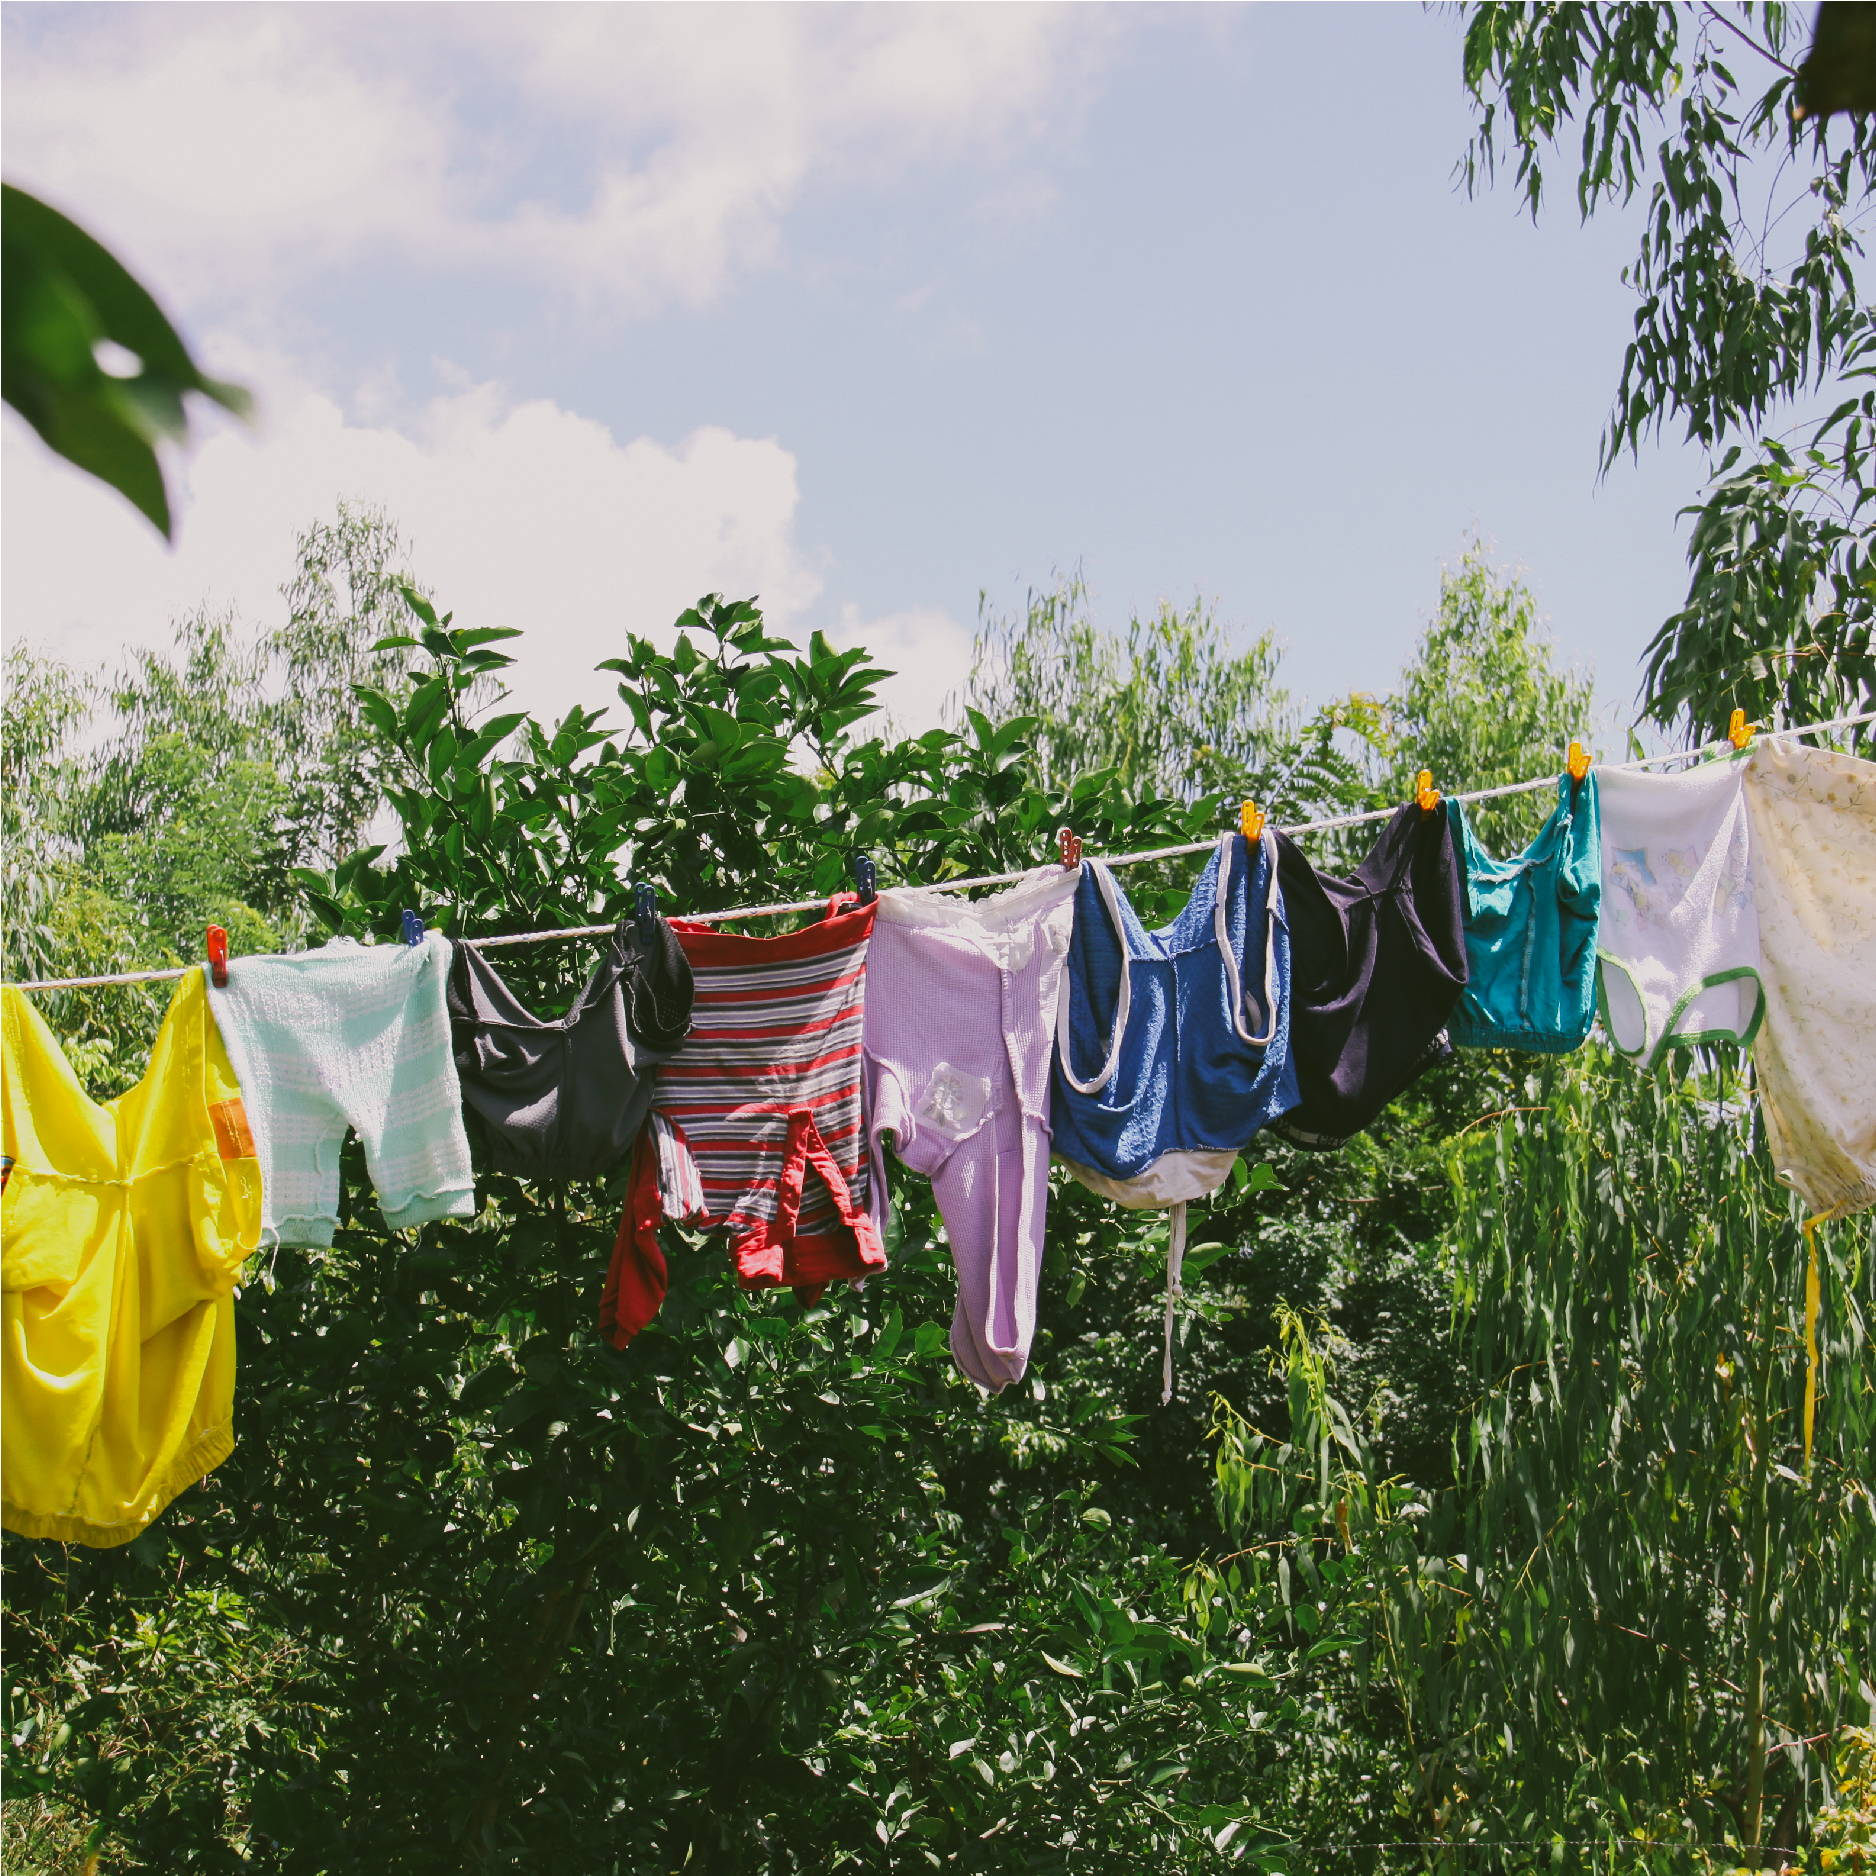 Clothes of all different colors hang on a drying line in front of thick green vegetation in Nicaragua.